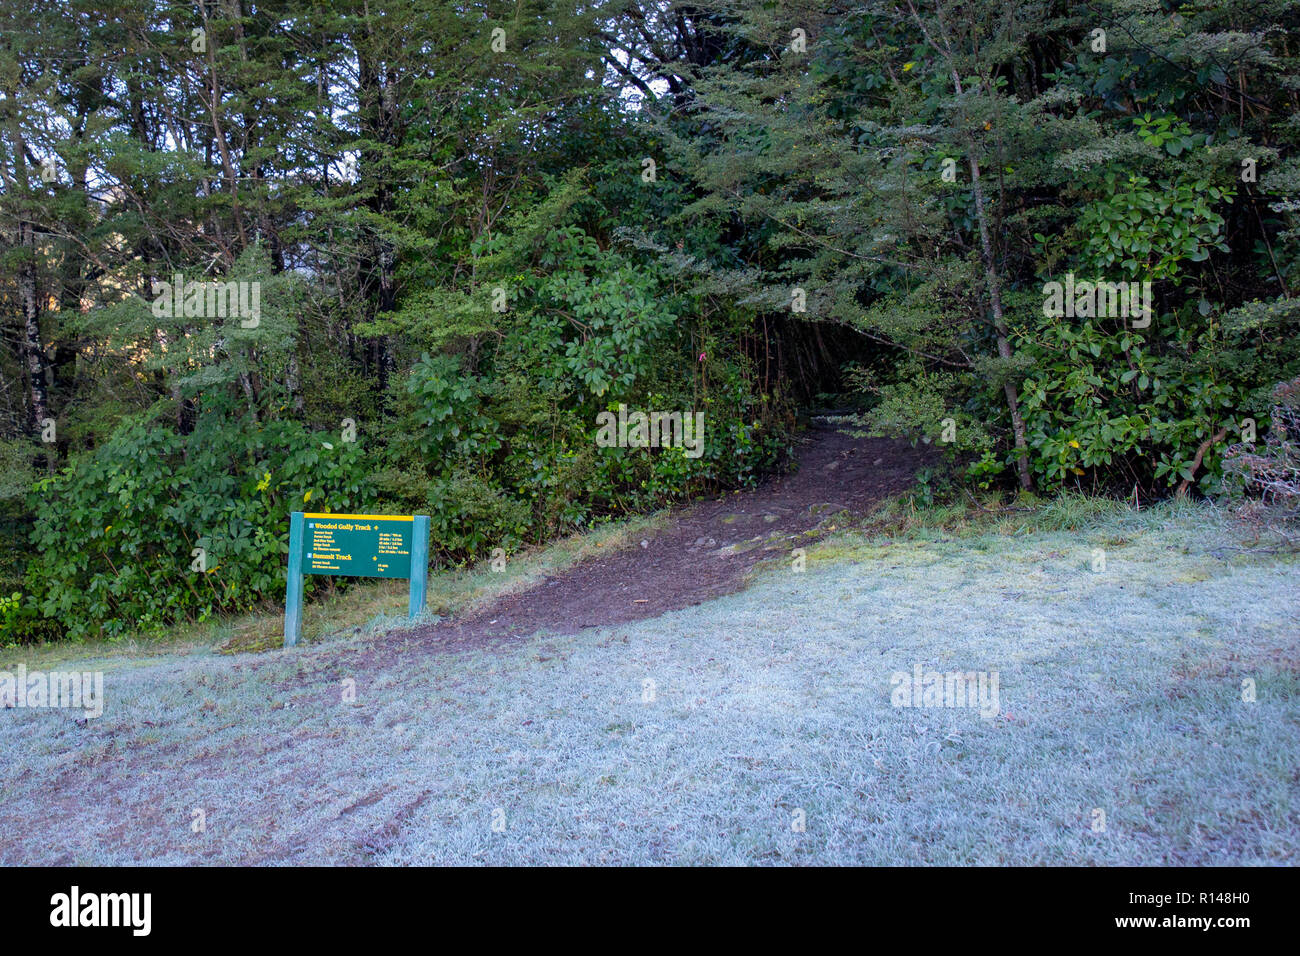 The start of a hiking track or trail with winter frost on the ground - Stock Image